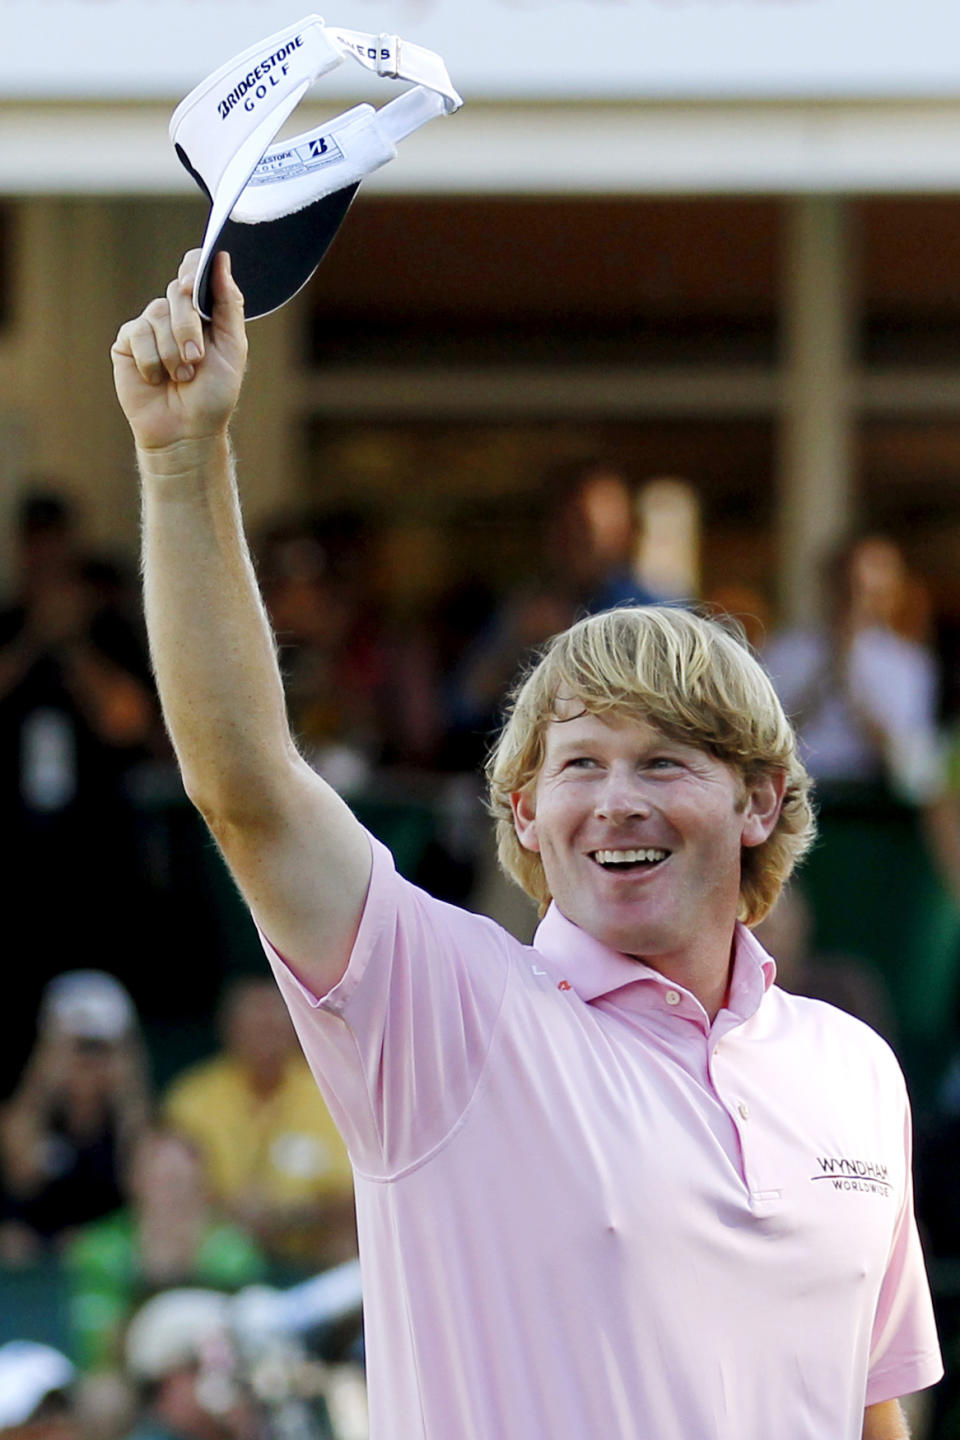 Brandt Snedeker waves to the crowd after winning the Tour Championship golf tournament and the FedEx Cup, Sunday, Sept. 23, 2012, in Atlanta. (AP Photo/John Bazemore)